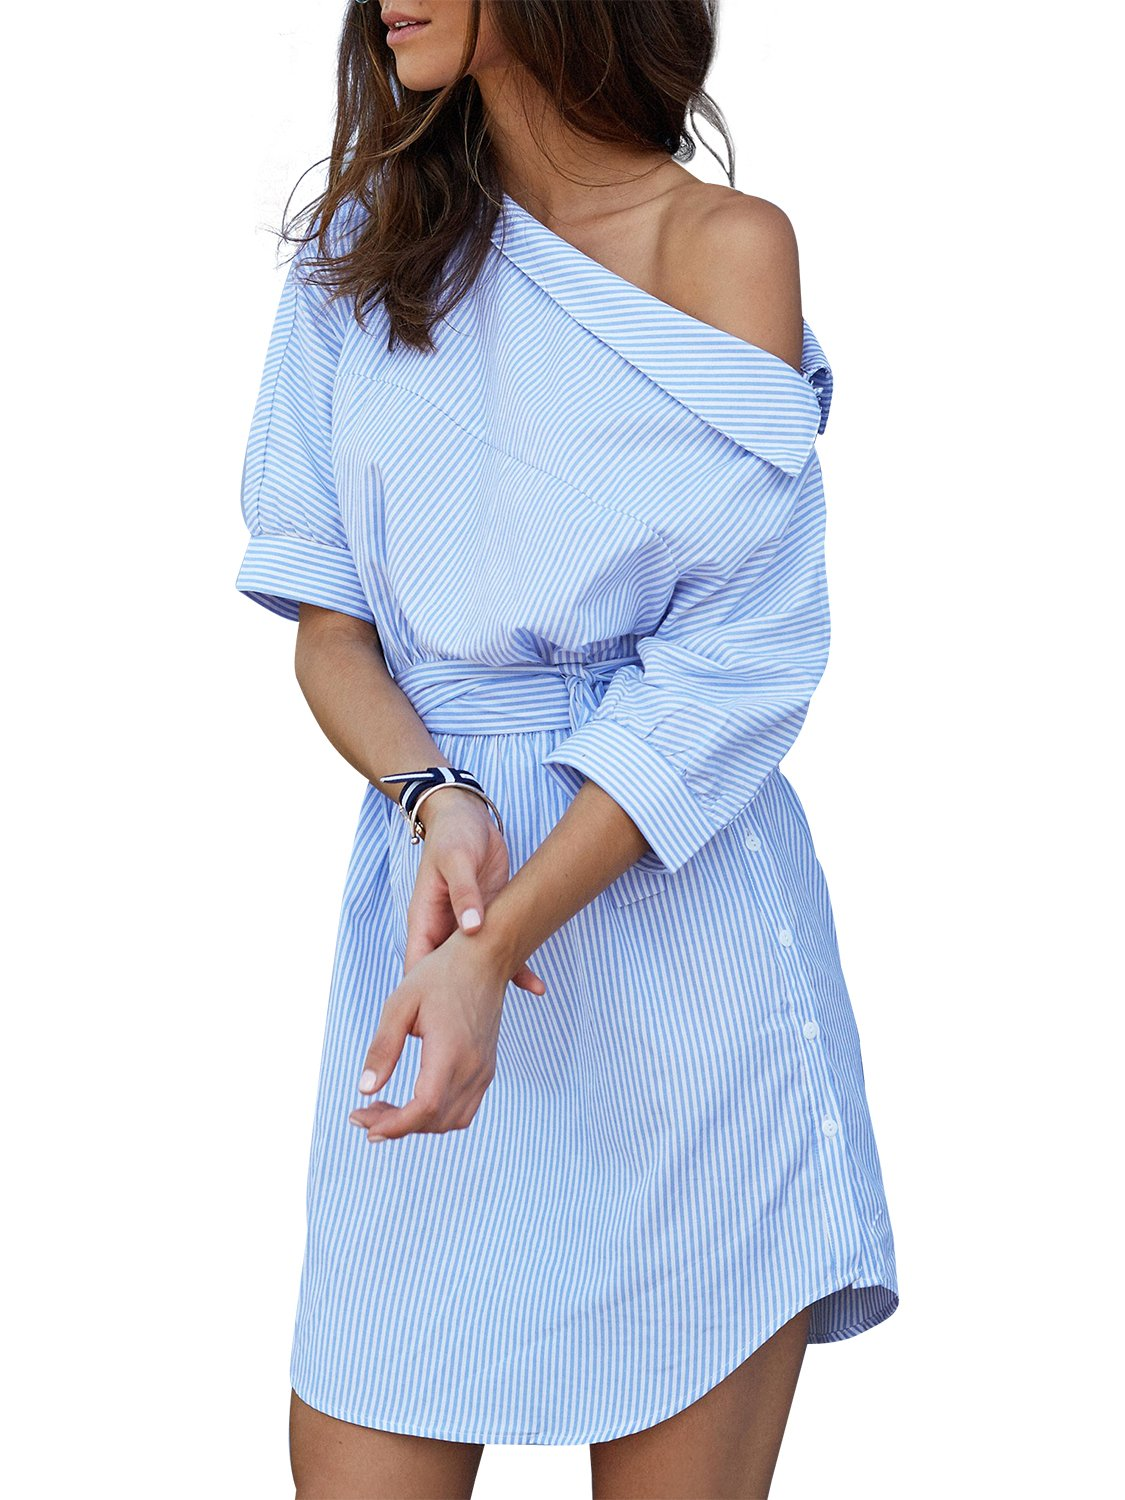 Available at Amazon: Simplee Apparel Women's Half Sleeve One Shoulder Side Split Striped Shirt Dress